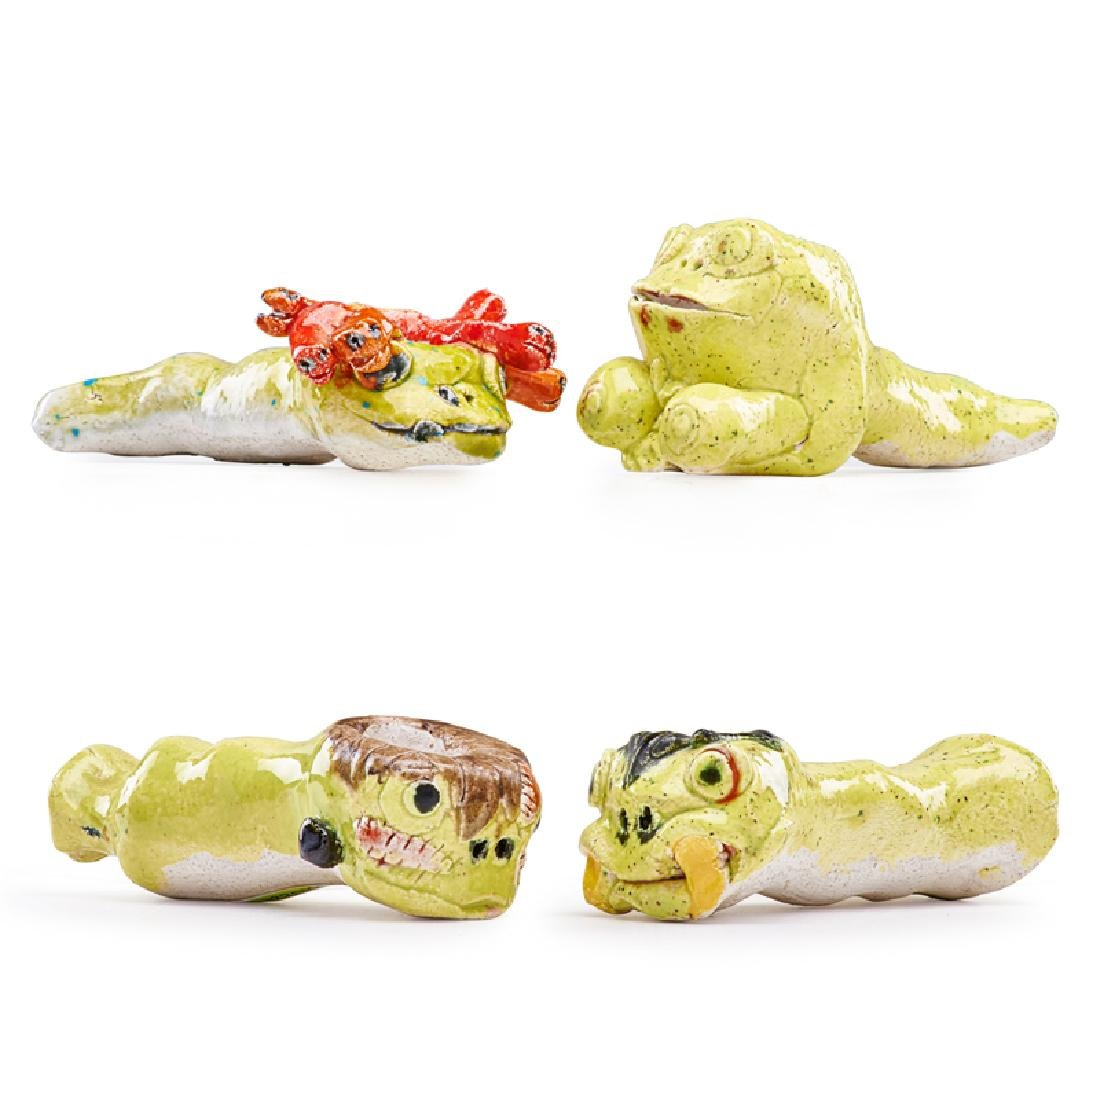 DAVID GILHOOLY Four frog pipes